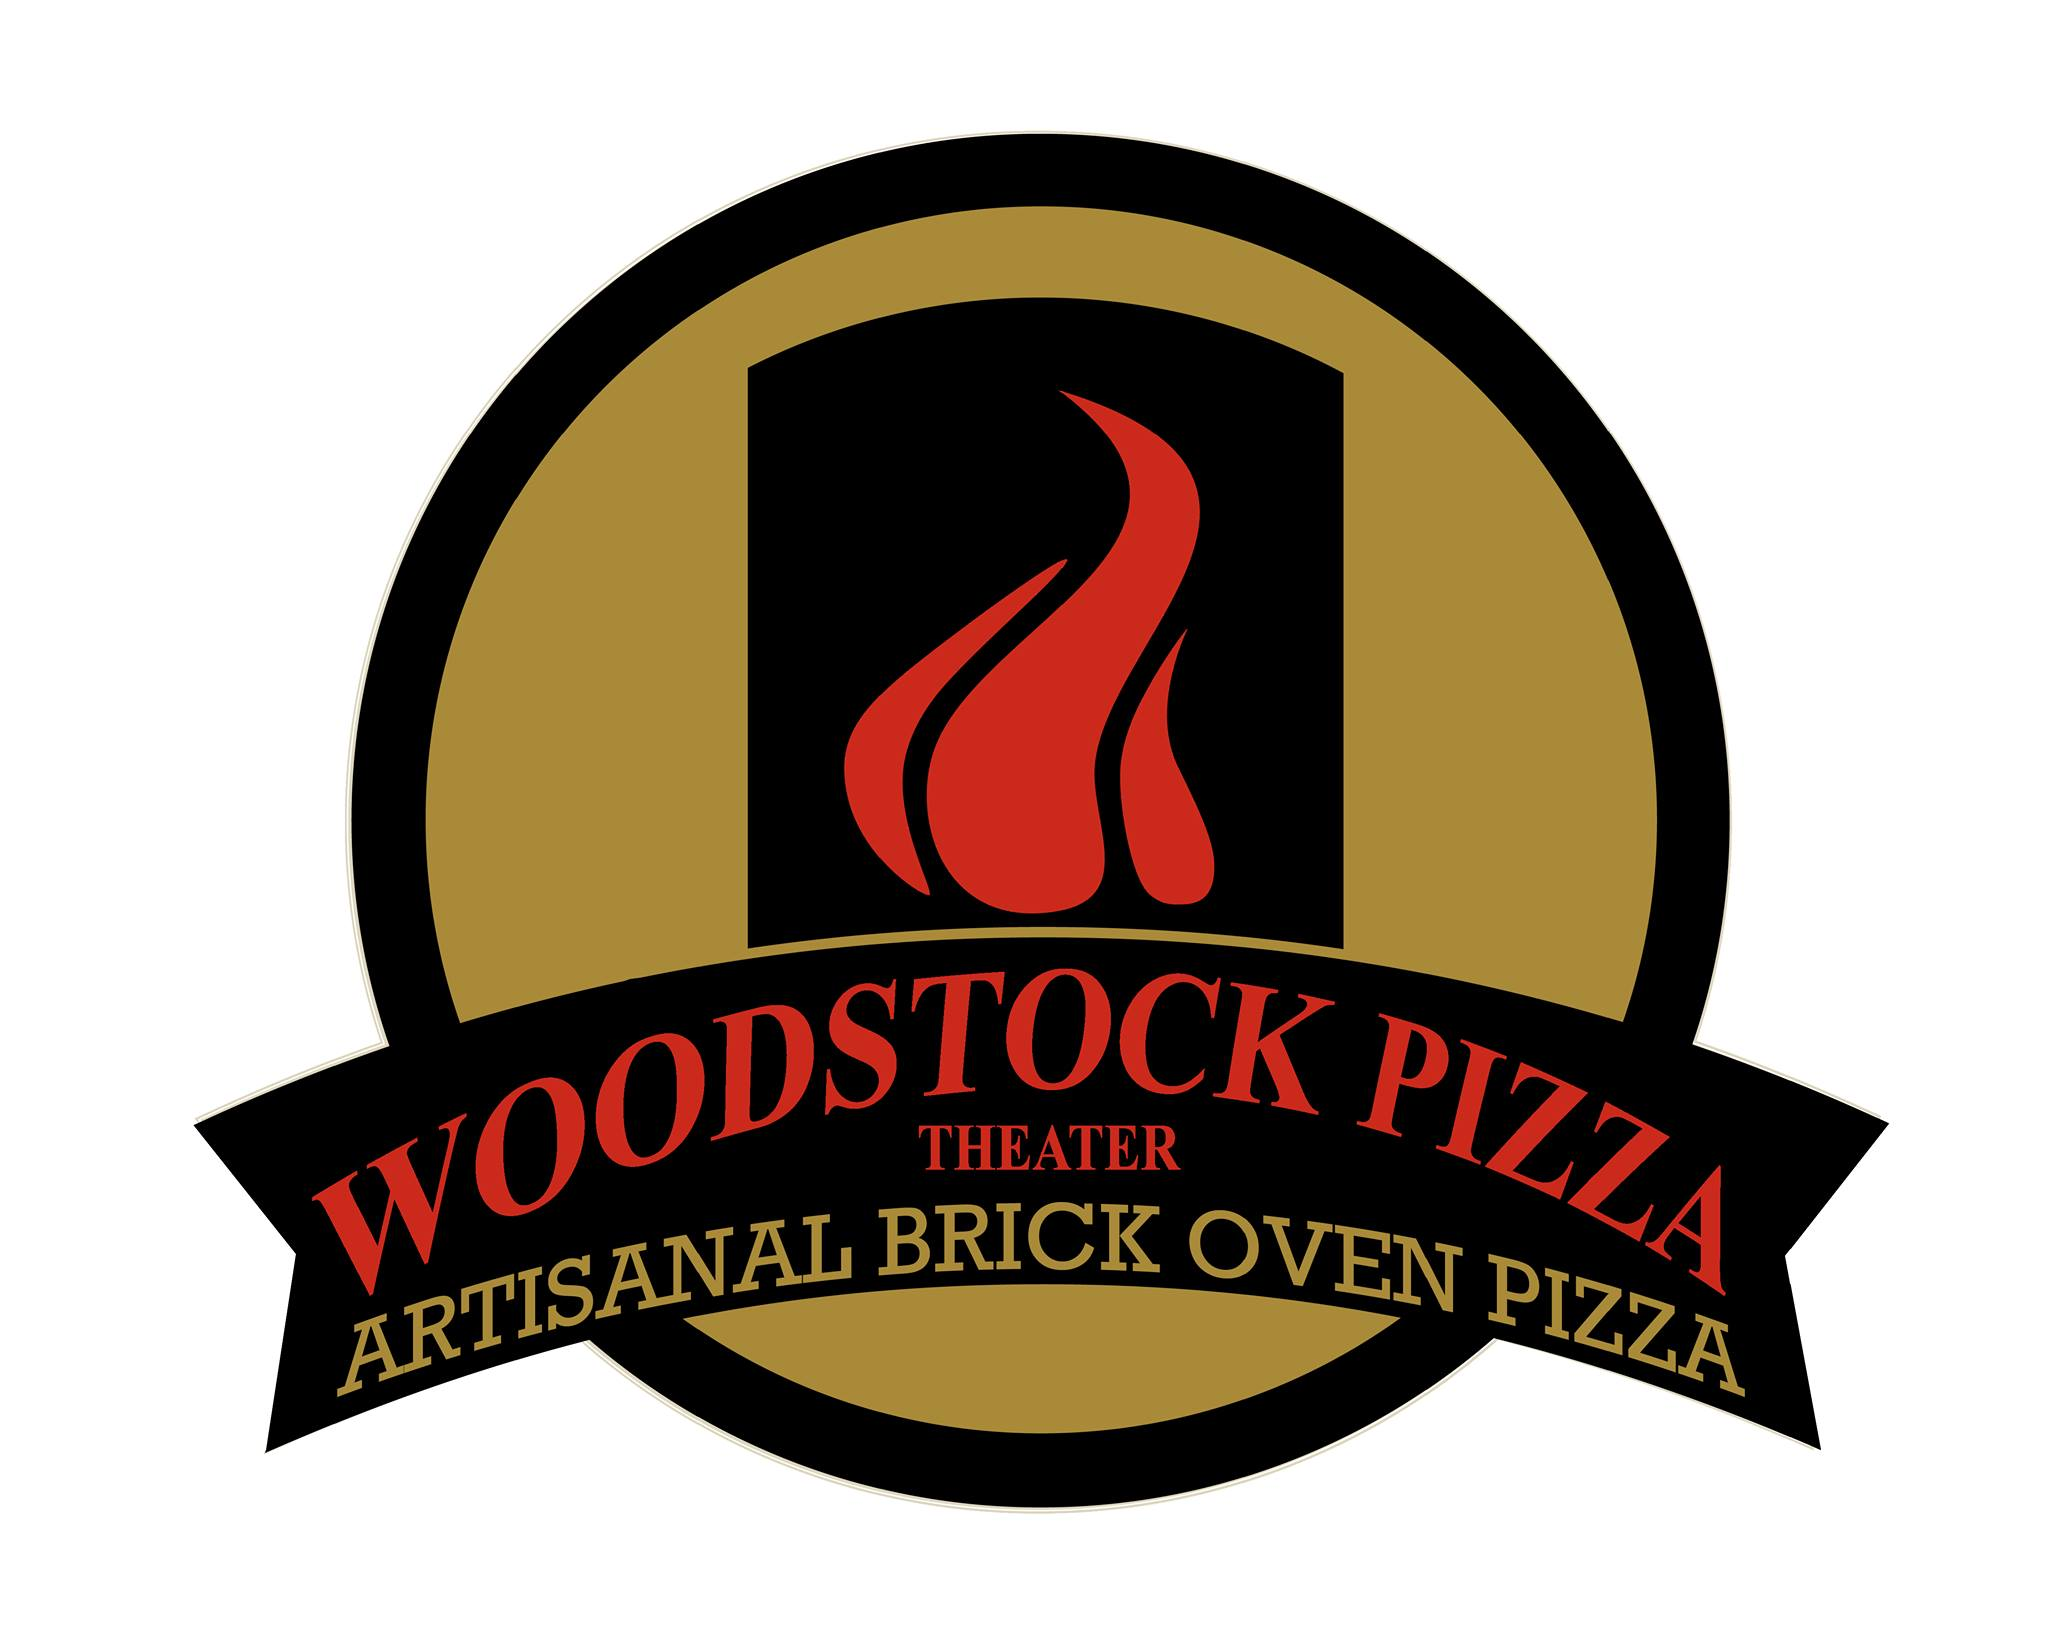 woodstockpizza.jpg